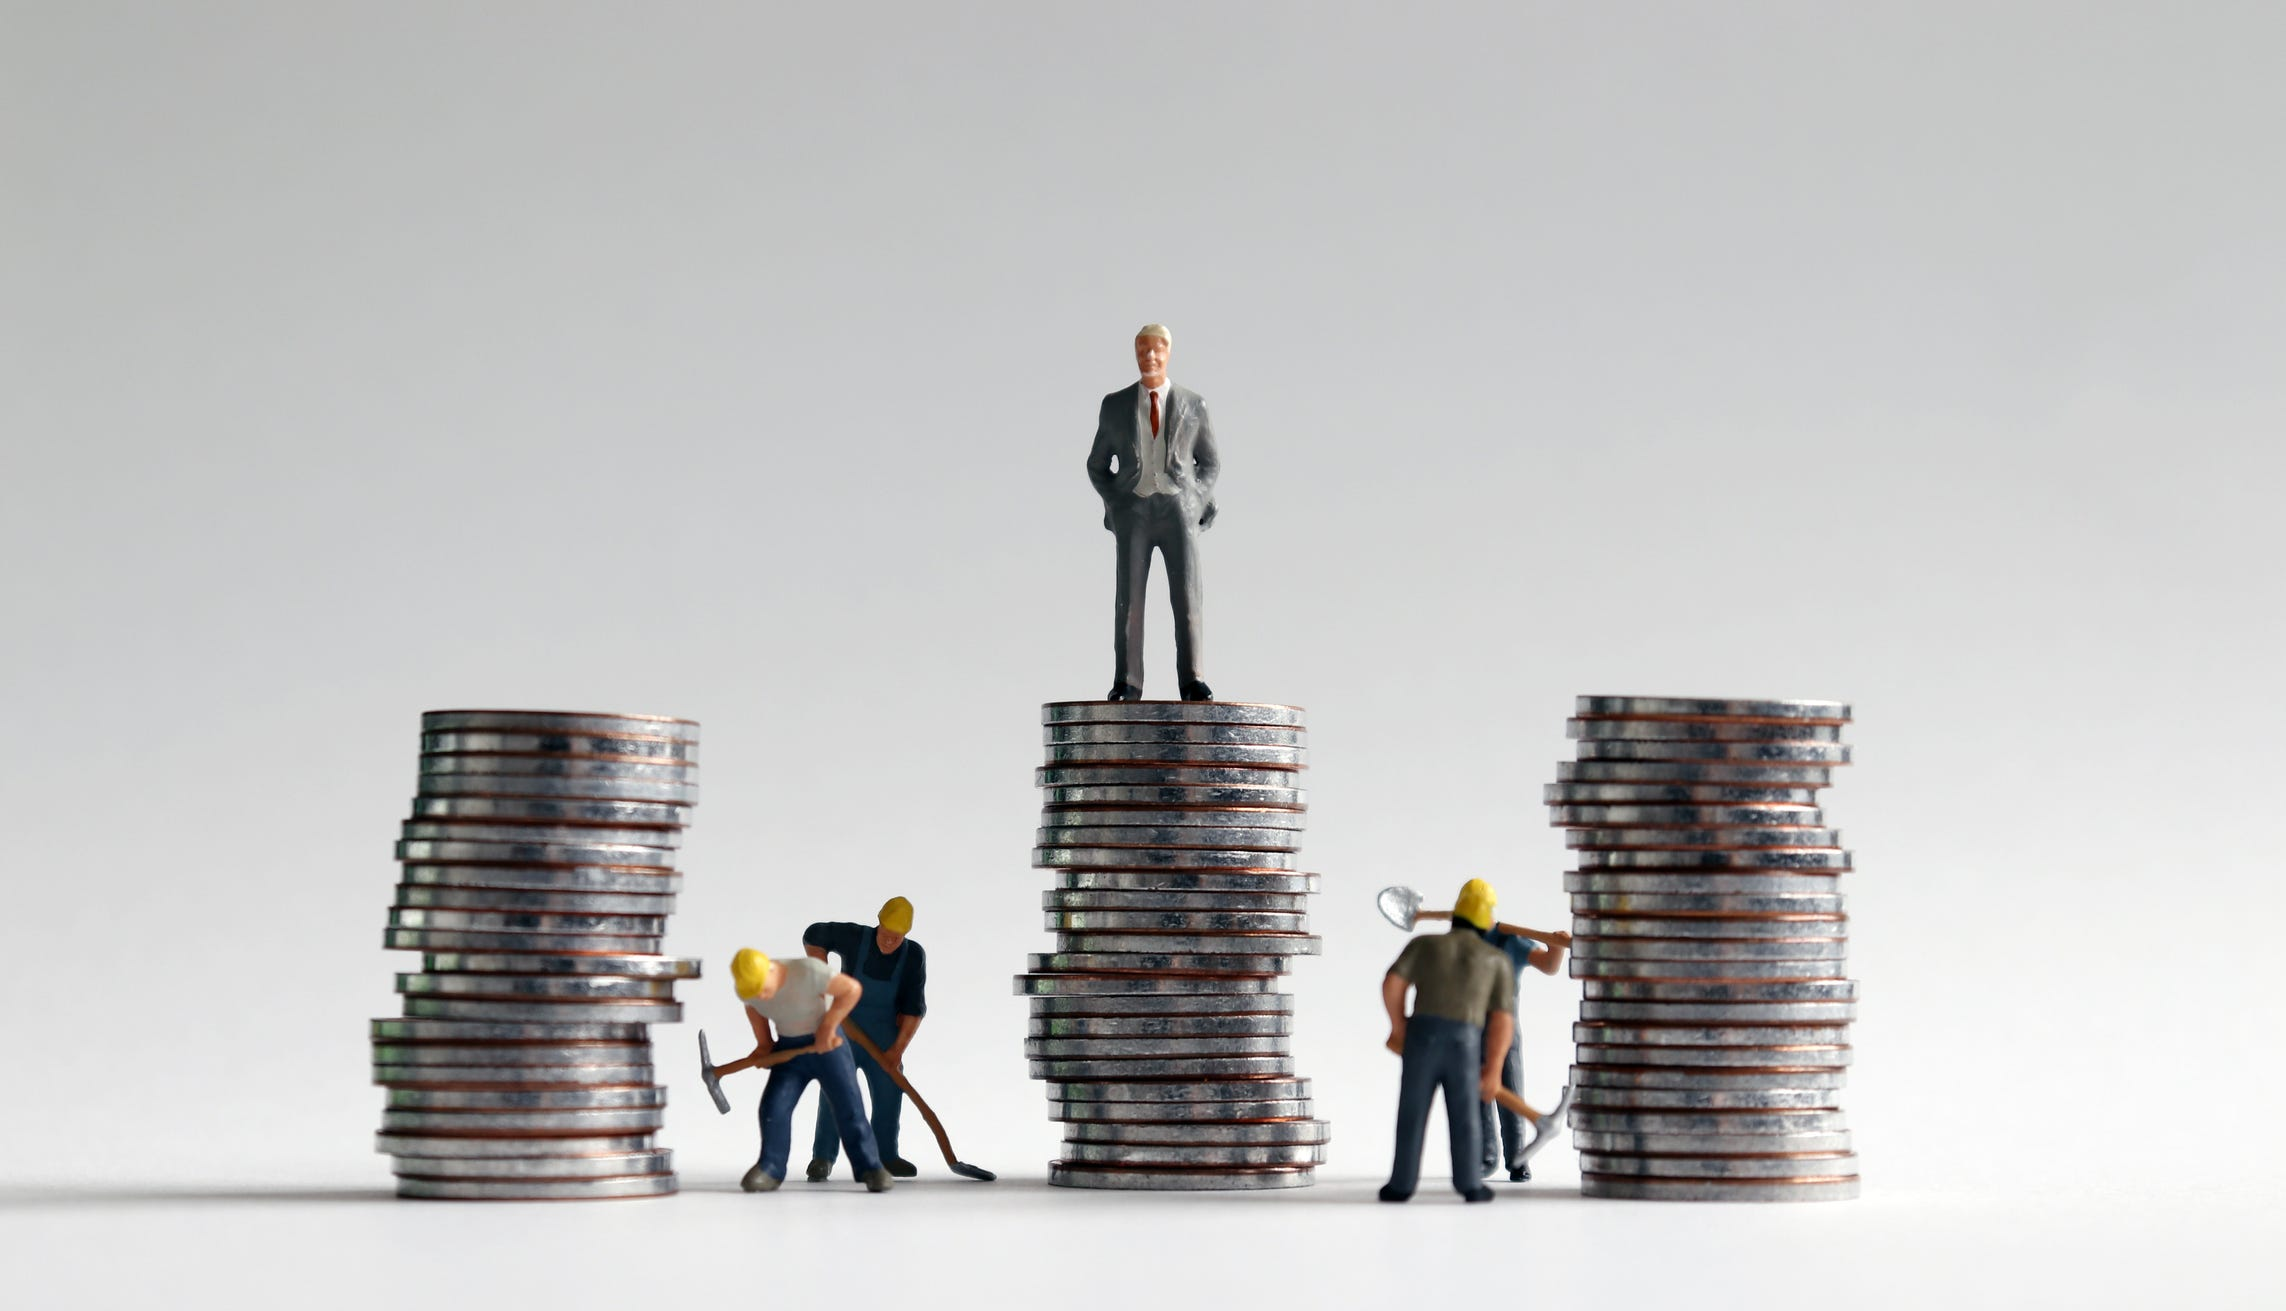 Yes, the rich got richer: Top 1% saw their wages soar by 160% since 1979, six times the increase of the bottom 90% of workers